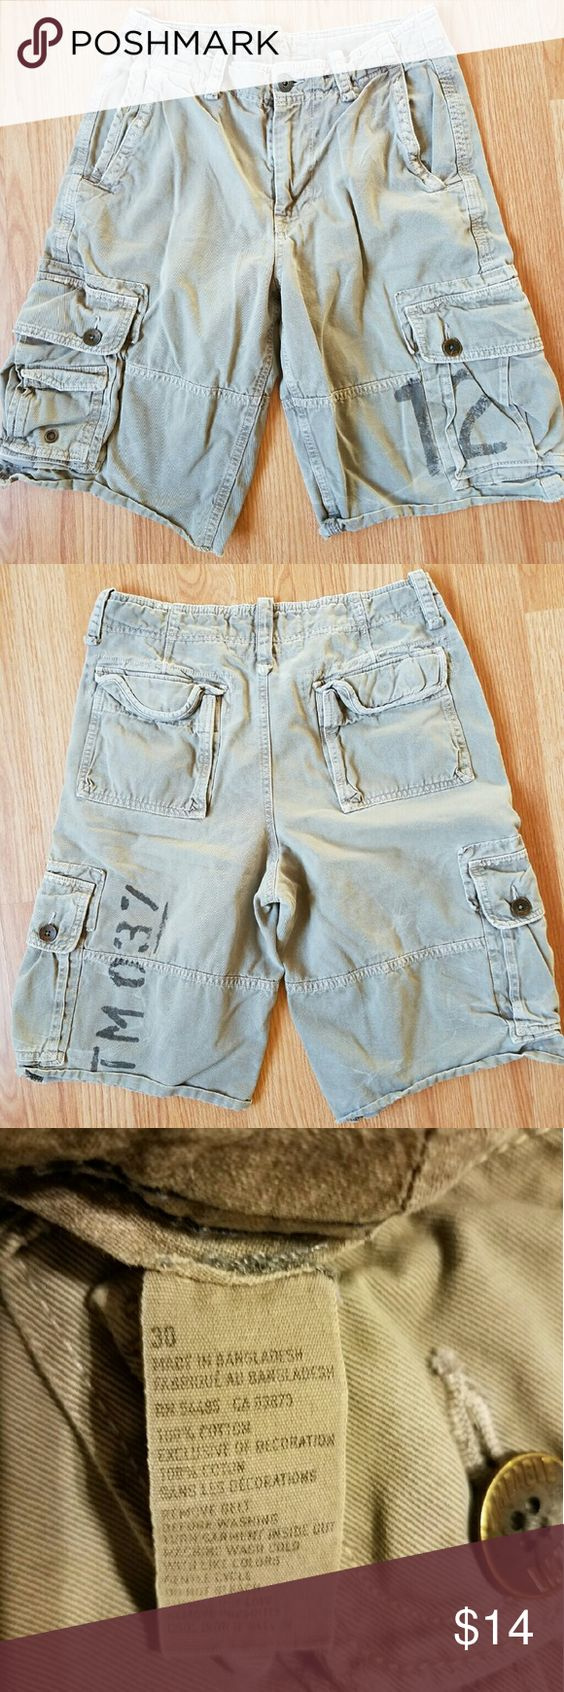 American Eagle Outfitters long shorts Faded Army Green American Eagle Outfitters cargo style men's longer length shorts. Size 30  100% Cotton no rips, tears or stains. No smoking or pets in home. American Eagle Outfitters Shorts Cargos